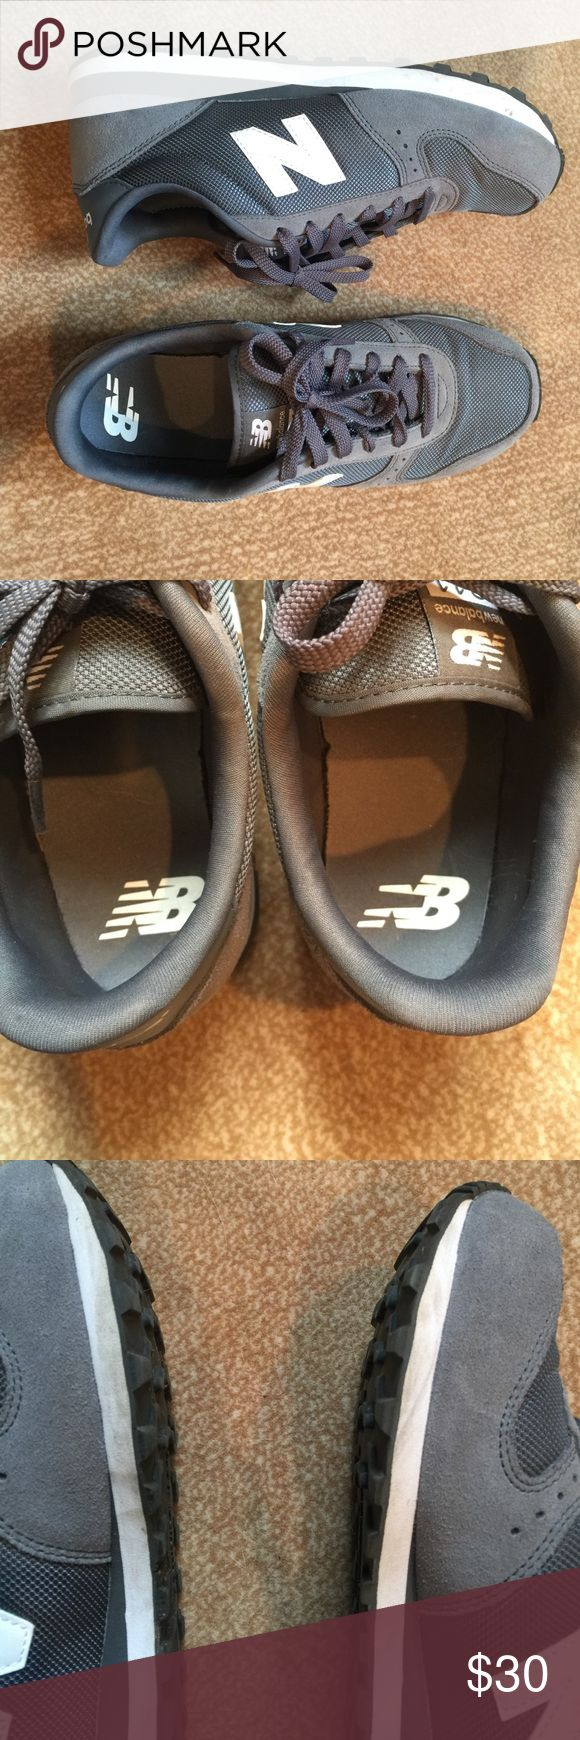 New balance shoes Men's 8 1/2 by fits me I usually wear a 9 1/2 or 10 in woman's New Balance Shoes Athletic Shoes